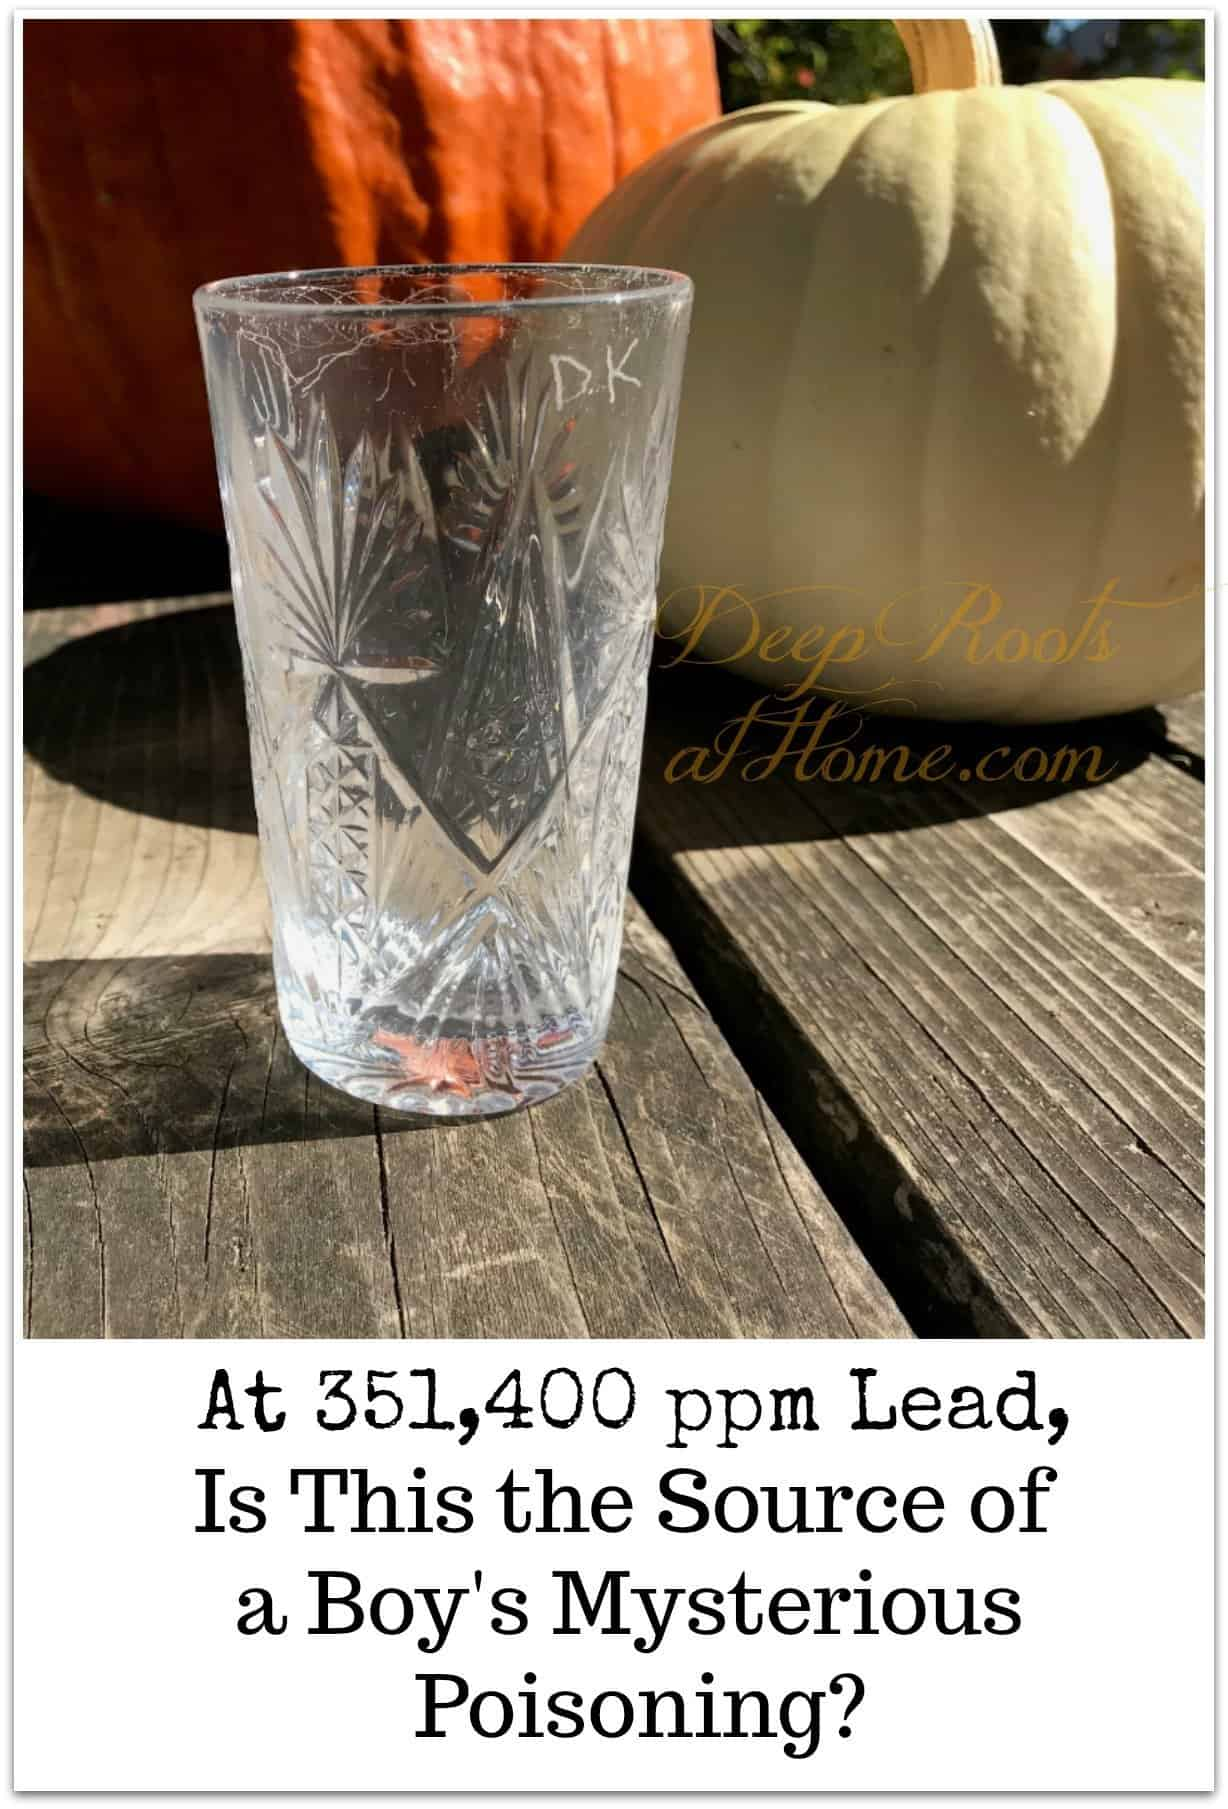 At 351,400 ppm Lead, Is This the Source of a Boy's Mysterious Poisoning? leaded glass